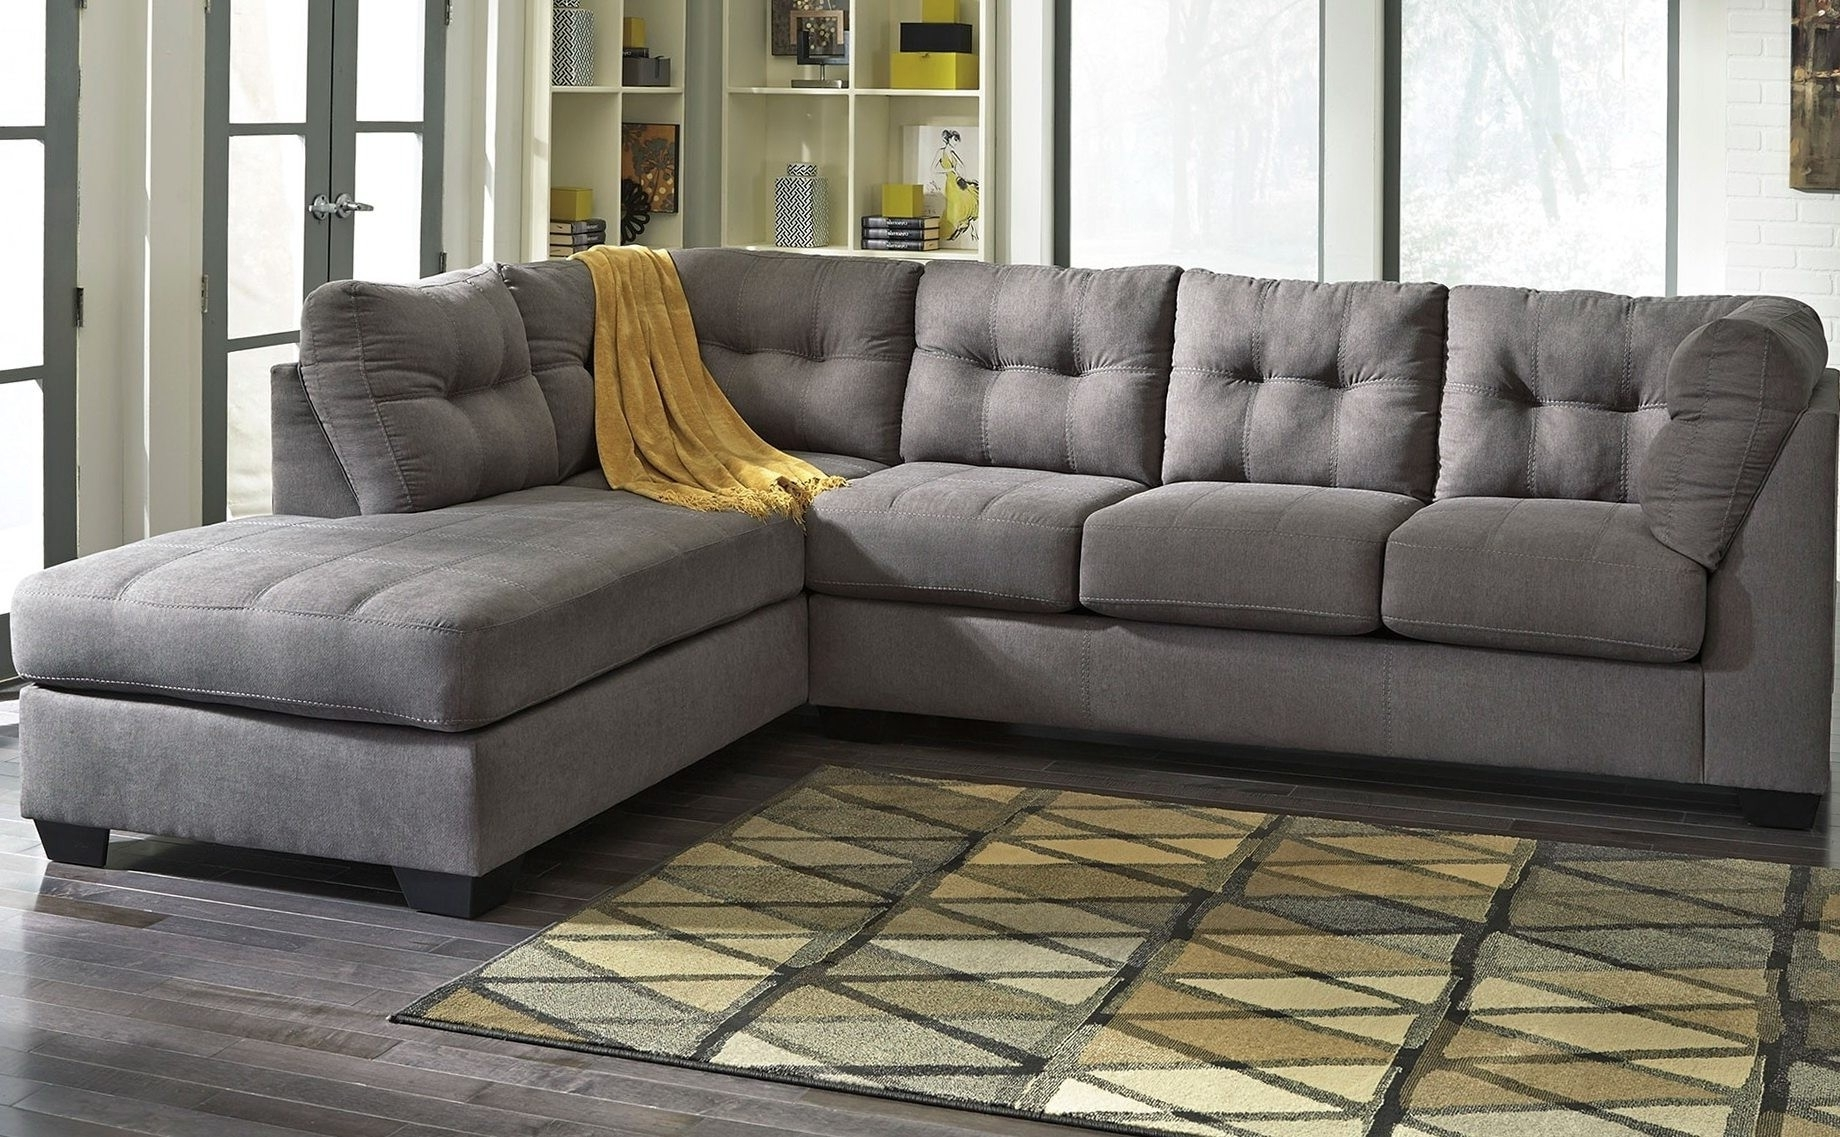 Newest Sofa ~ Awesome Grey Corduroy Couch Sectional Sofas With Chaise For Grey Chaise Lounges (View 10 of 15)